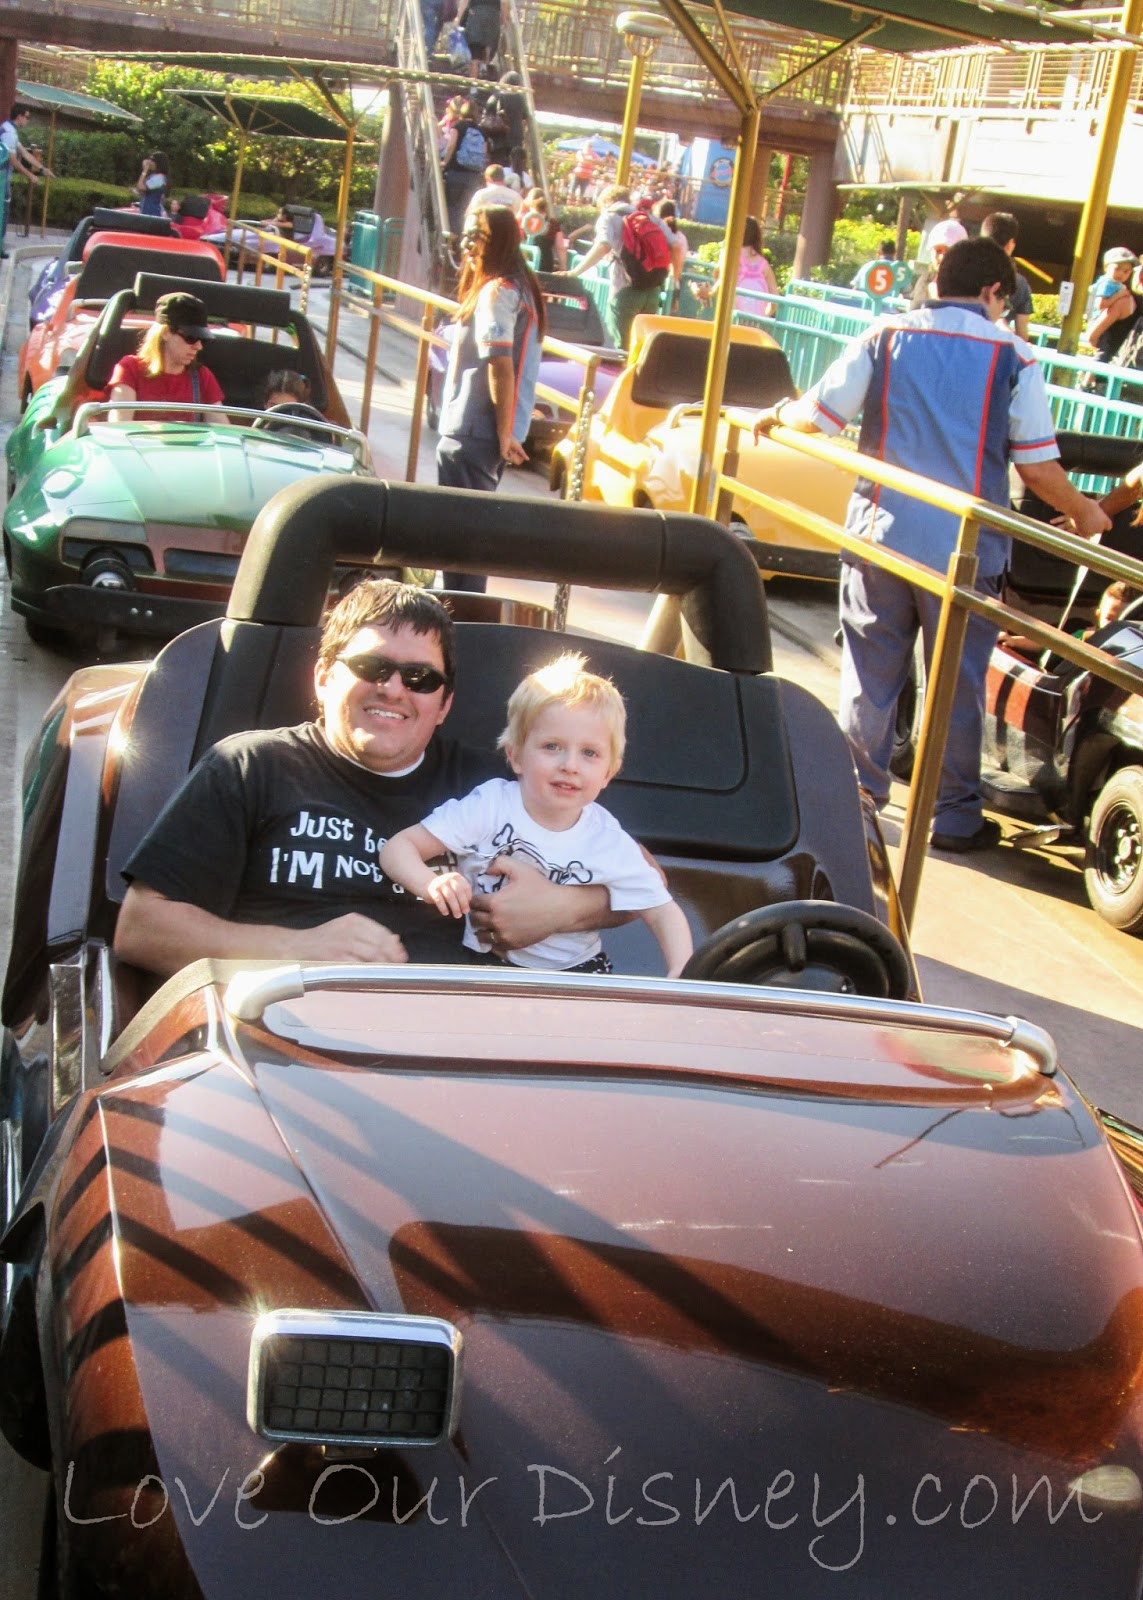 Preschoolers love driving a car on Autopia and these other Disneyland rides. LoveOurDisney.com